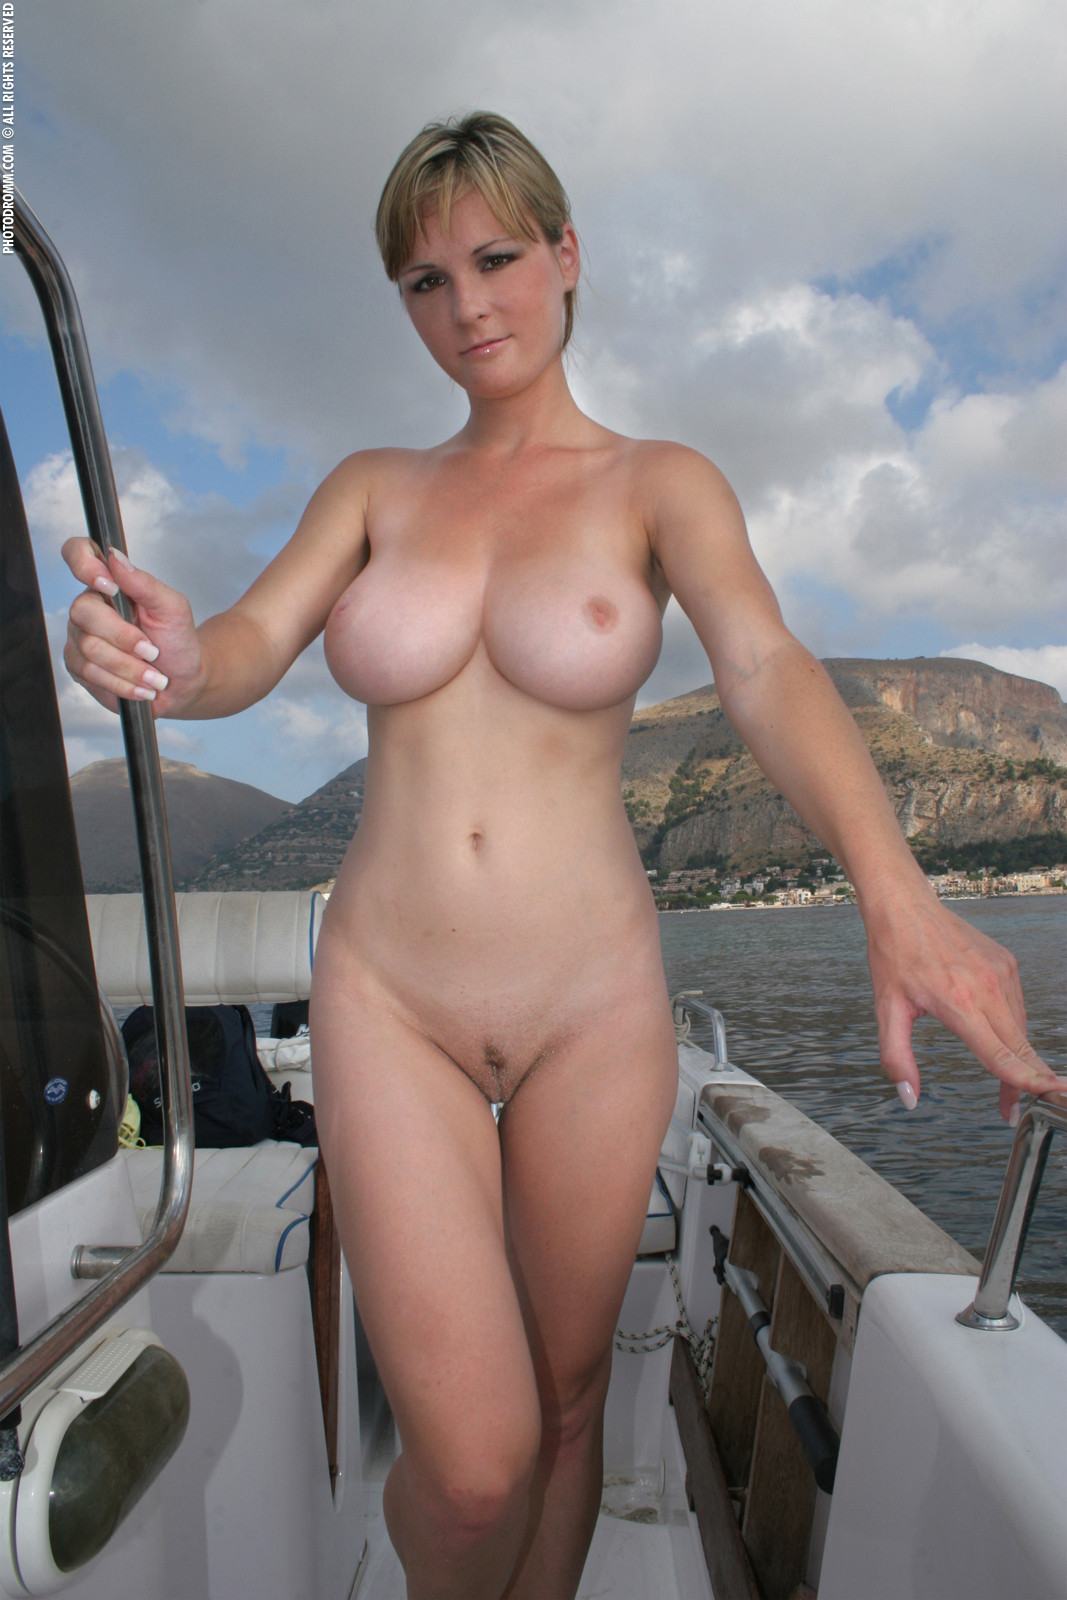 Porn on boats